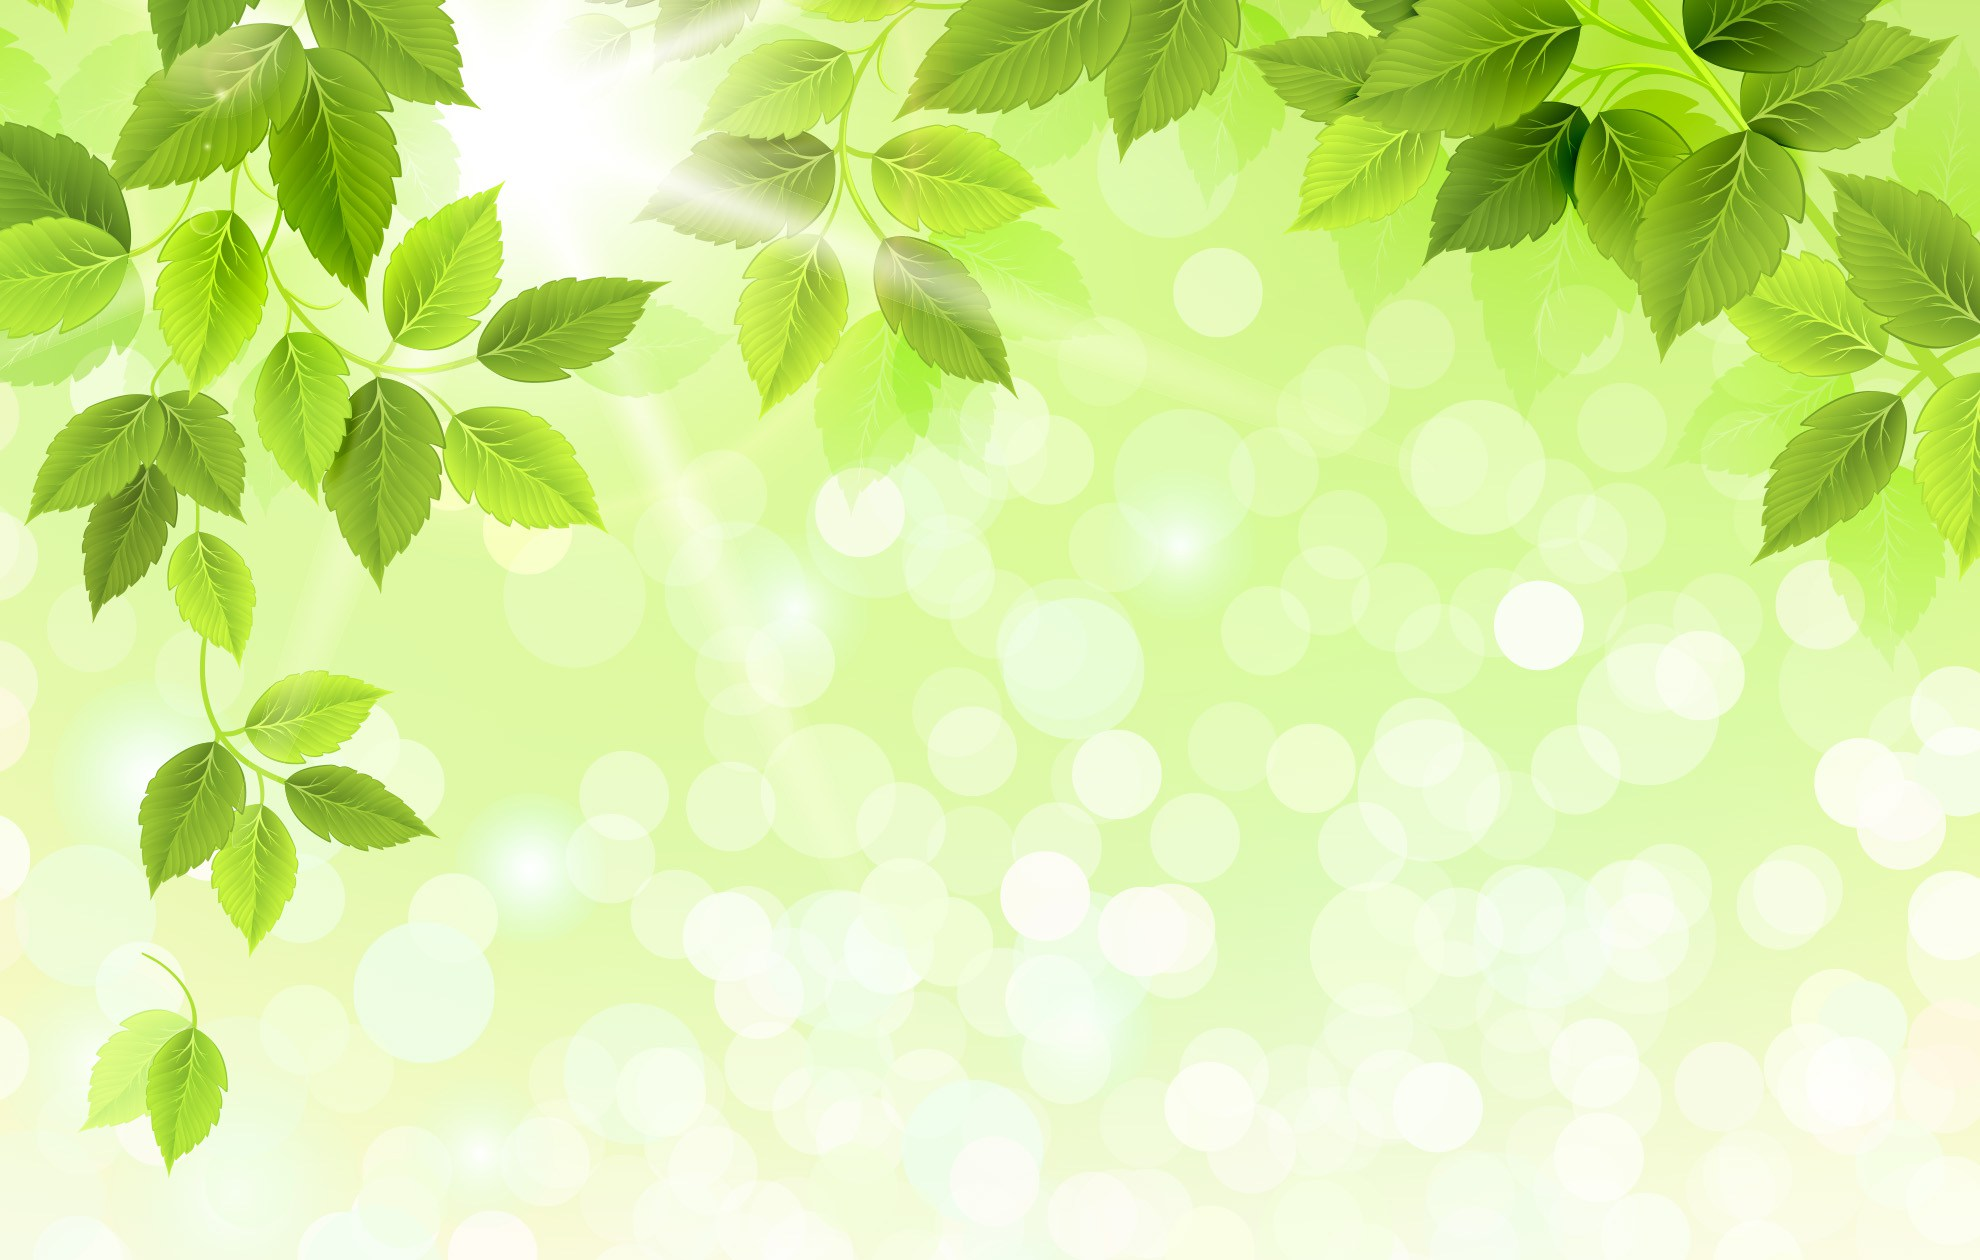 free photo green leaves background green  light  leaf free leaf vector backgrounds free leaf vector icon